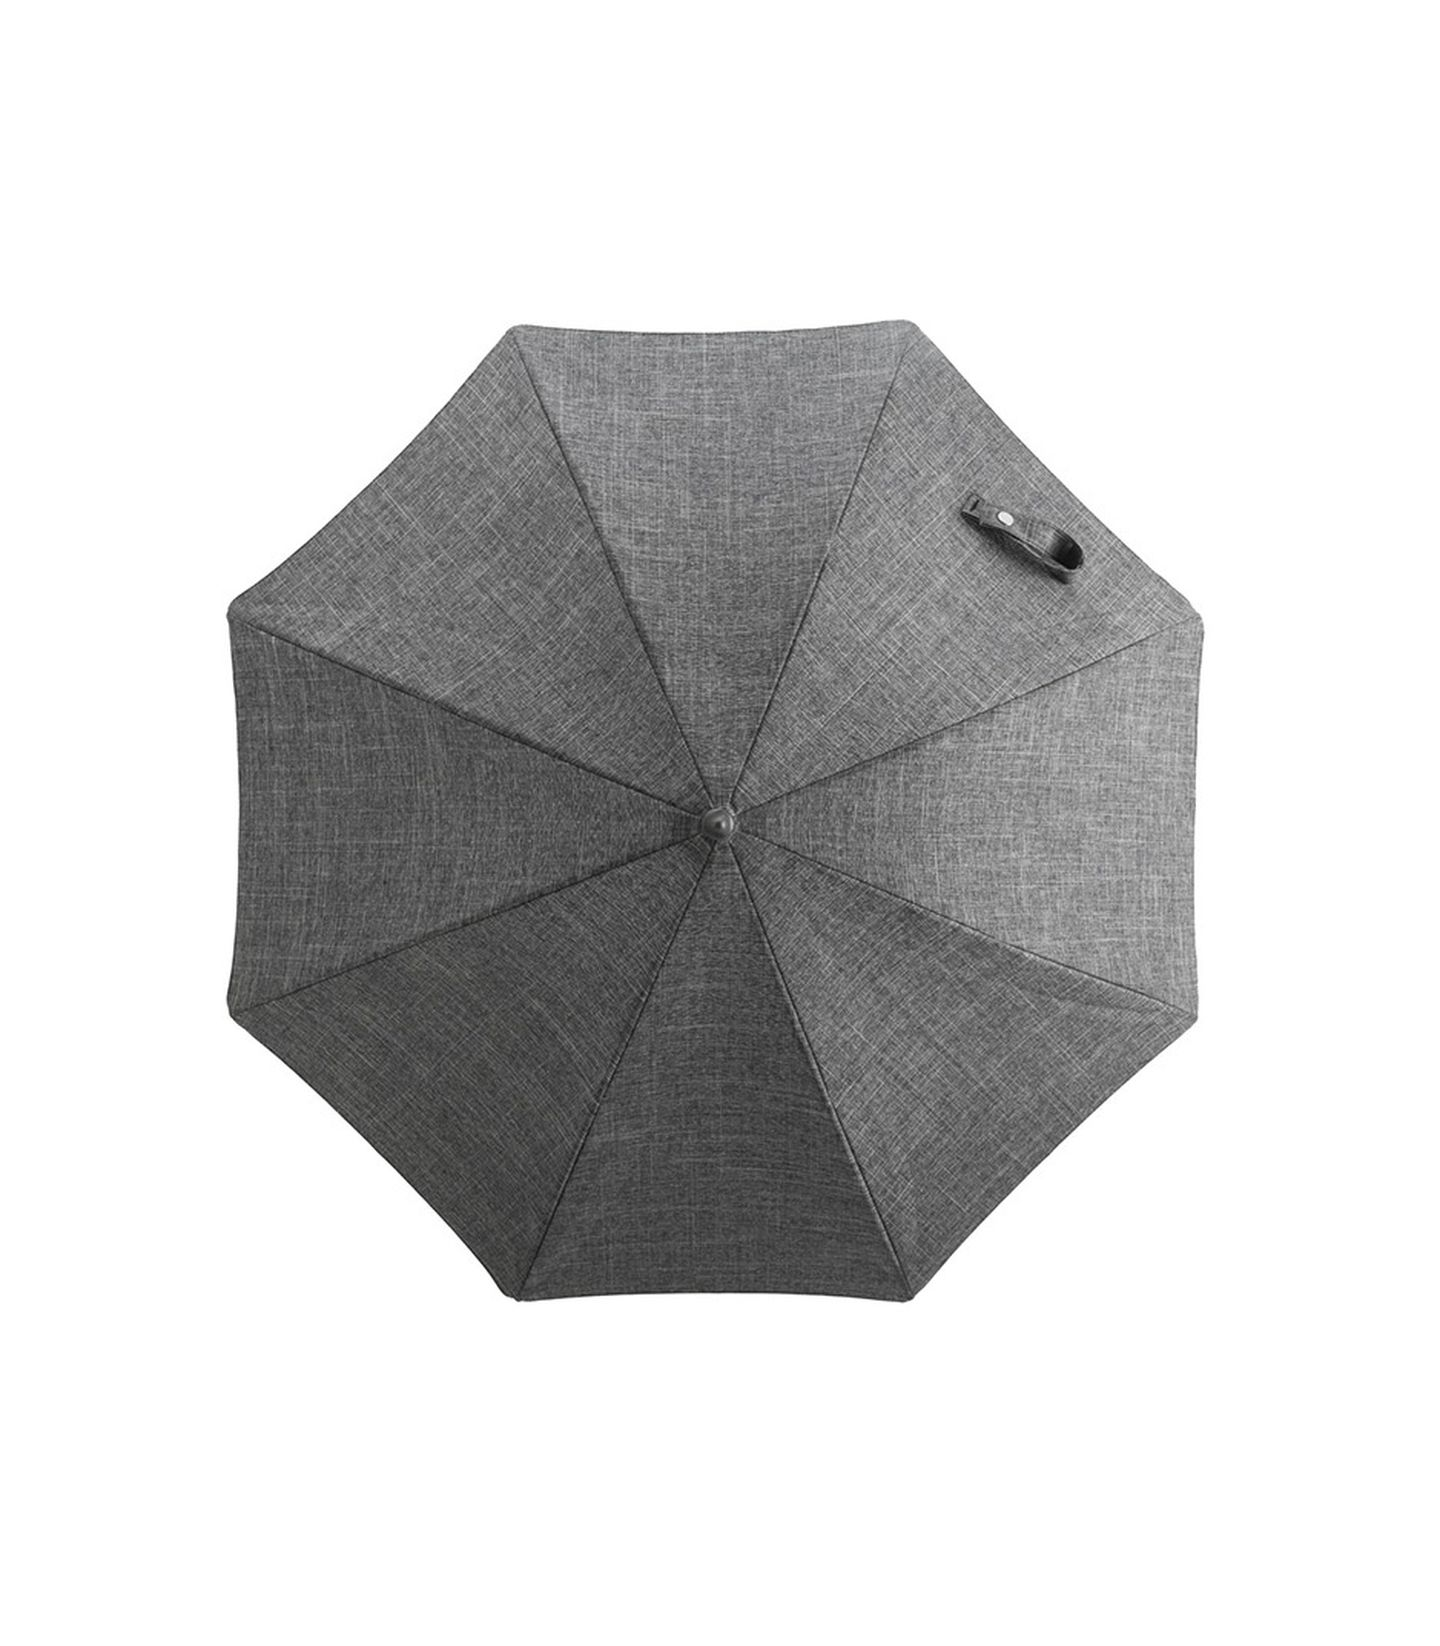 Baby Parasol compatible with Stokke Crusi Grey